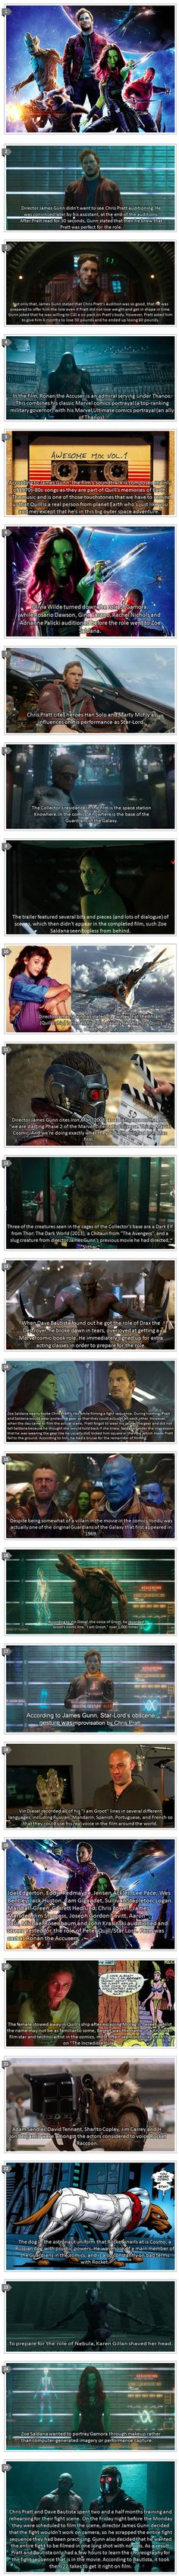 Here are some interesting Guardians of the Galaxy facts you might not have known.